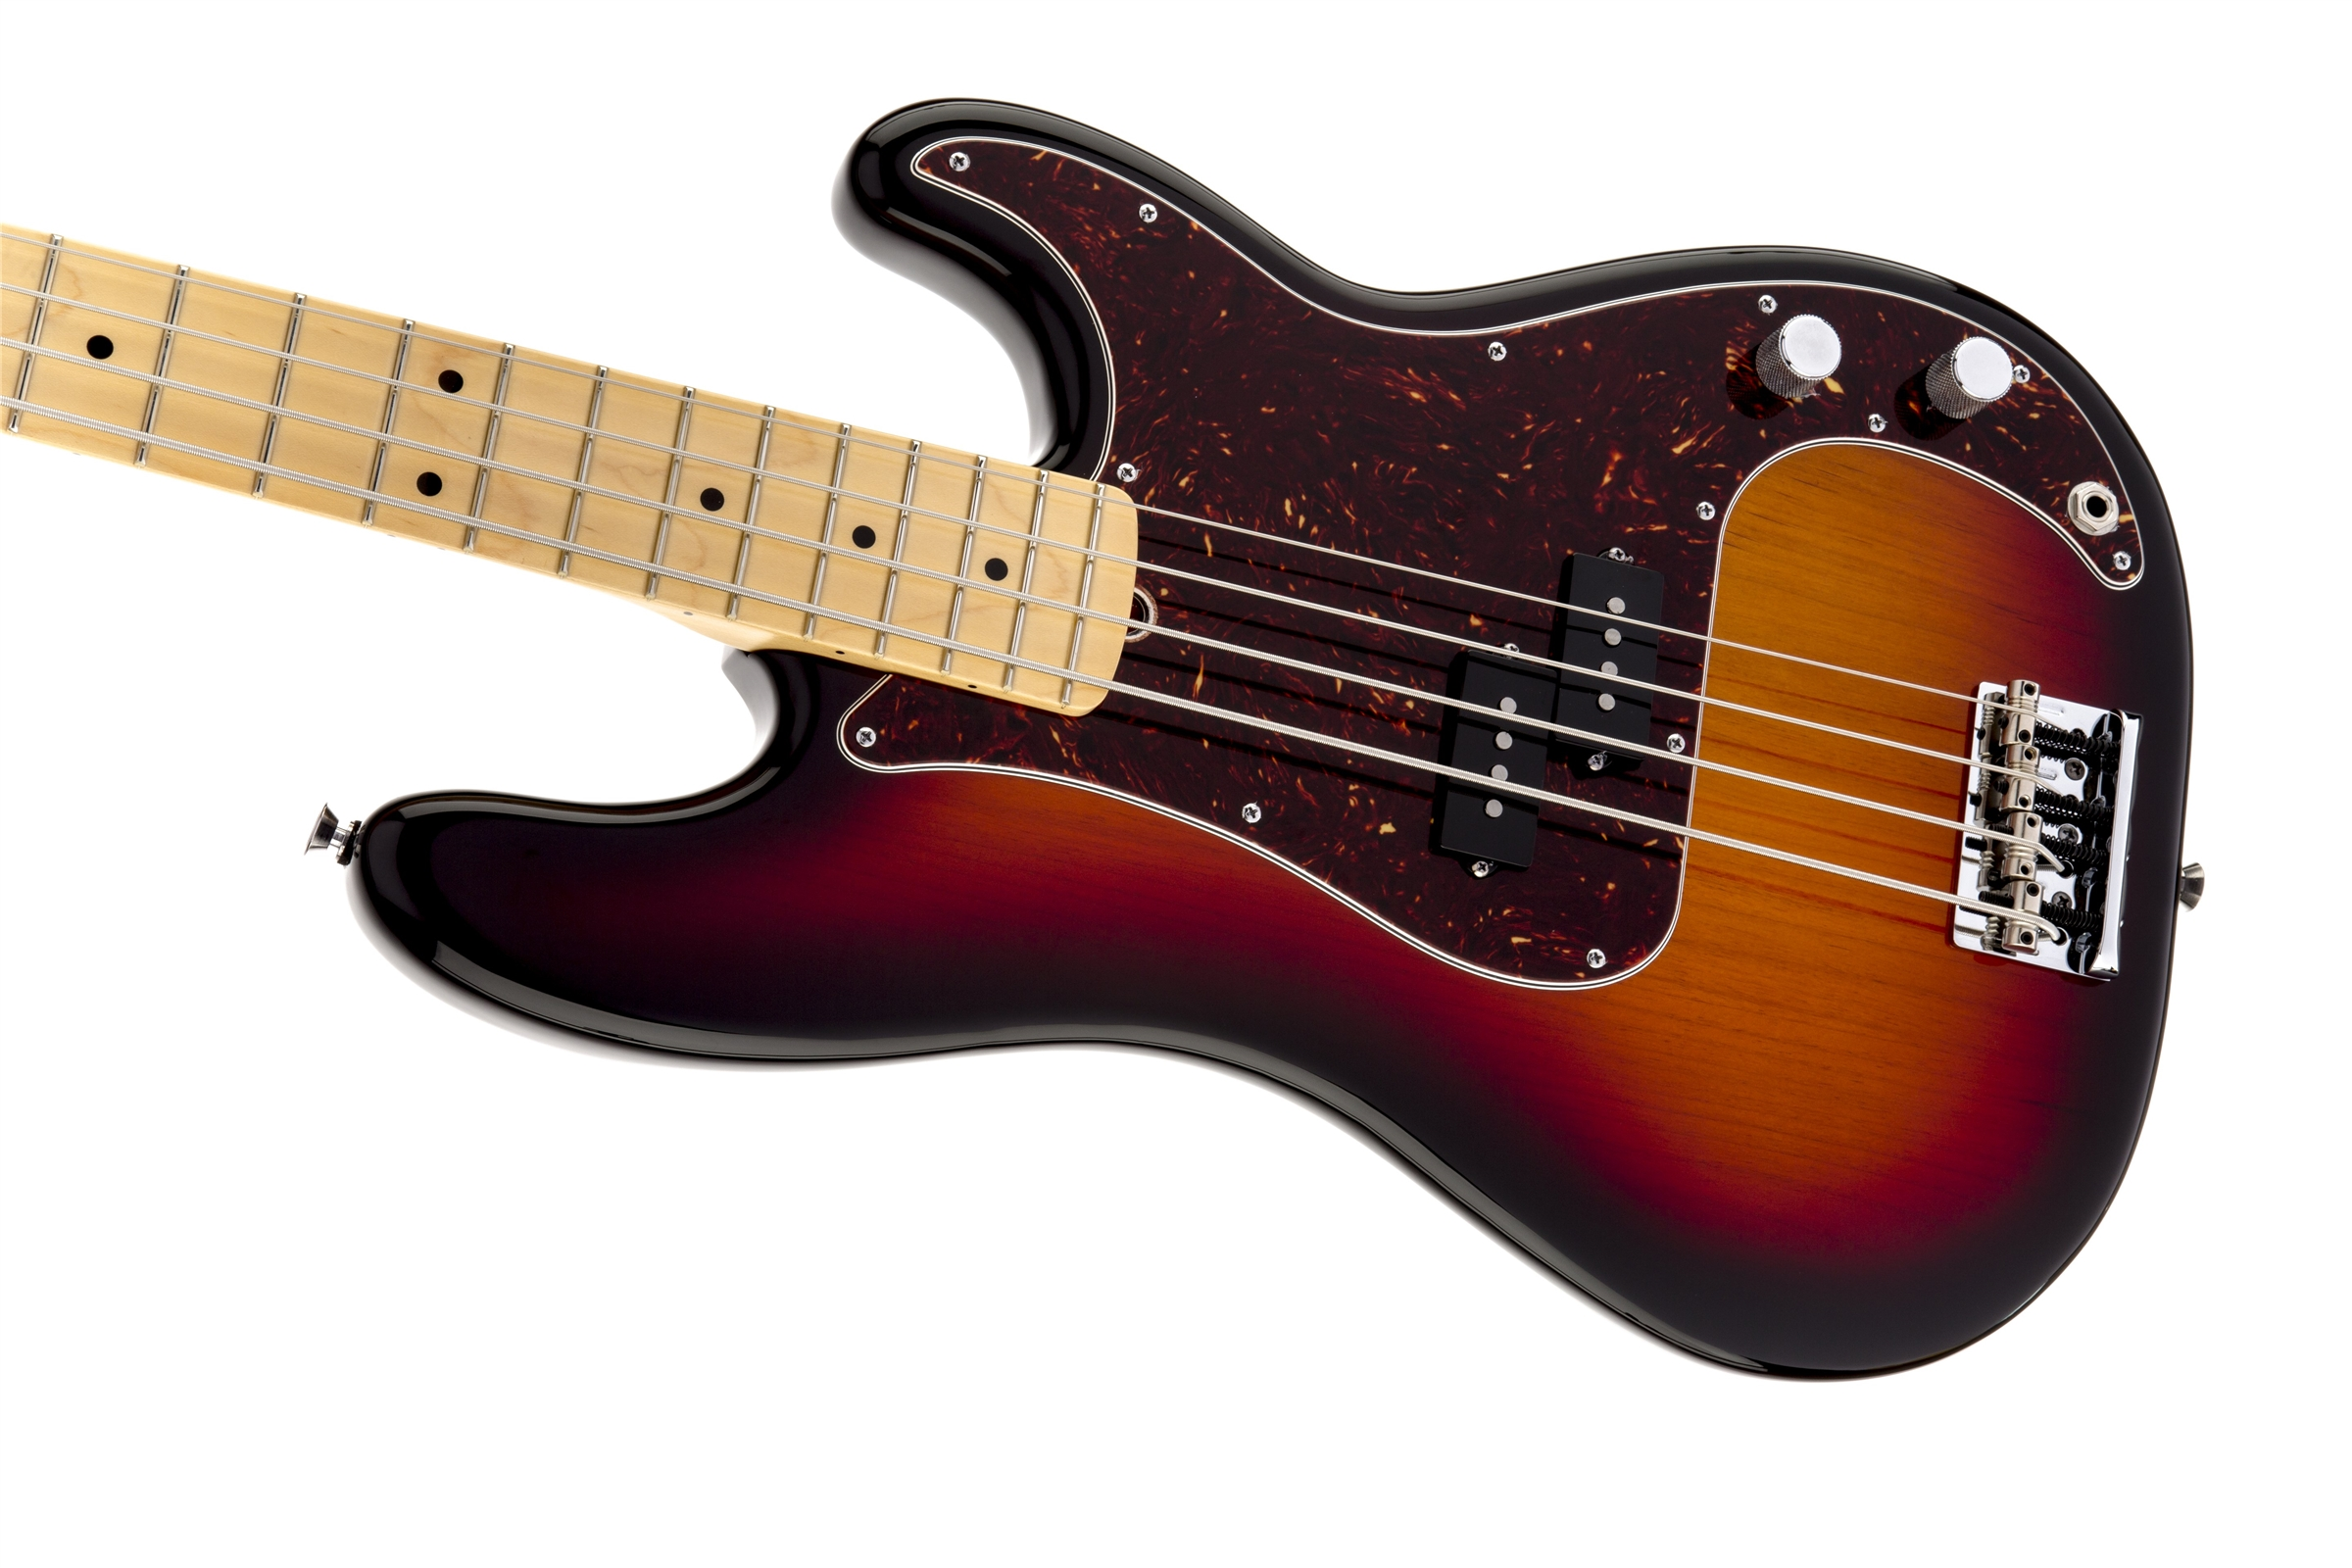 Fender American Standard Precision Bass® 3-Color Sunburst Maple Fingerboard Electric Bass Guitar